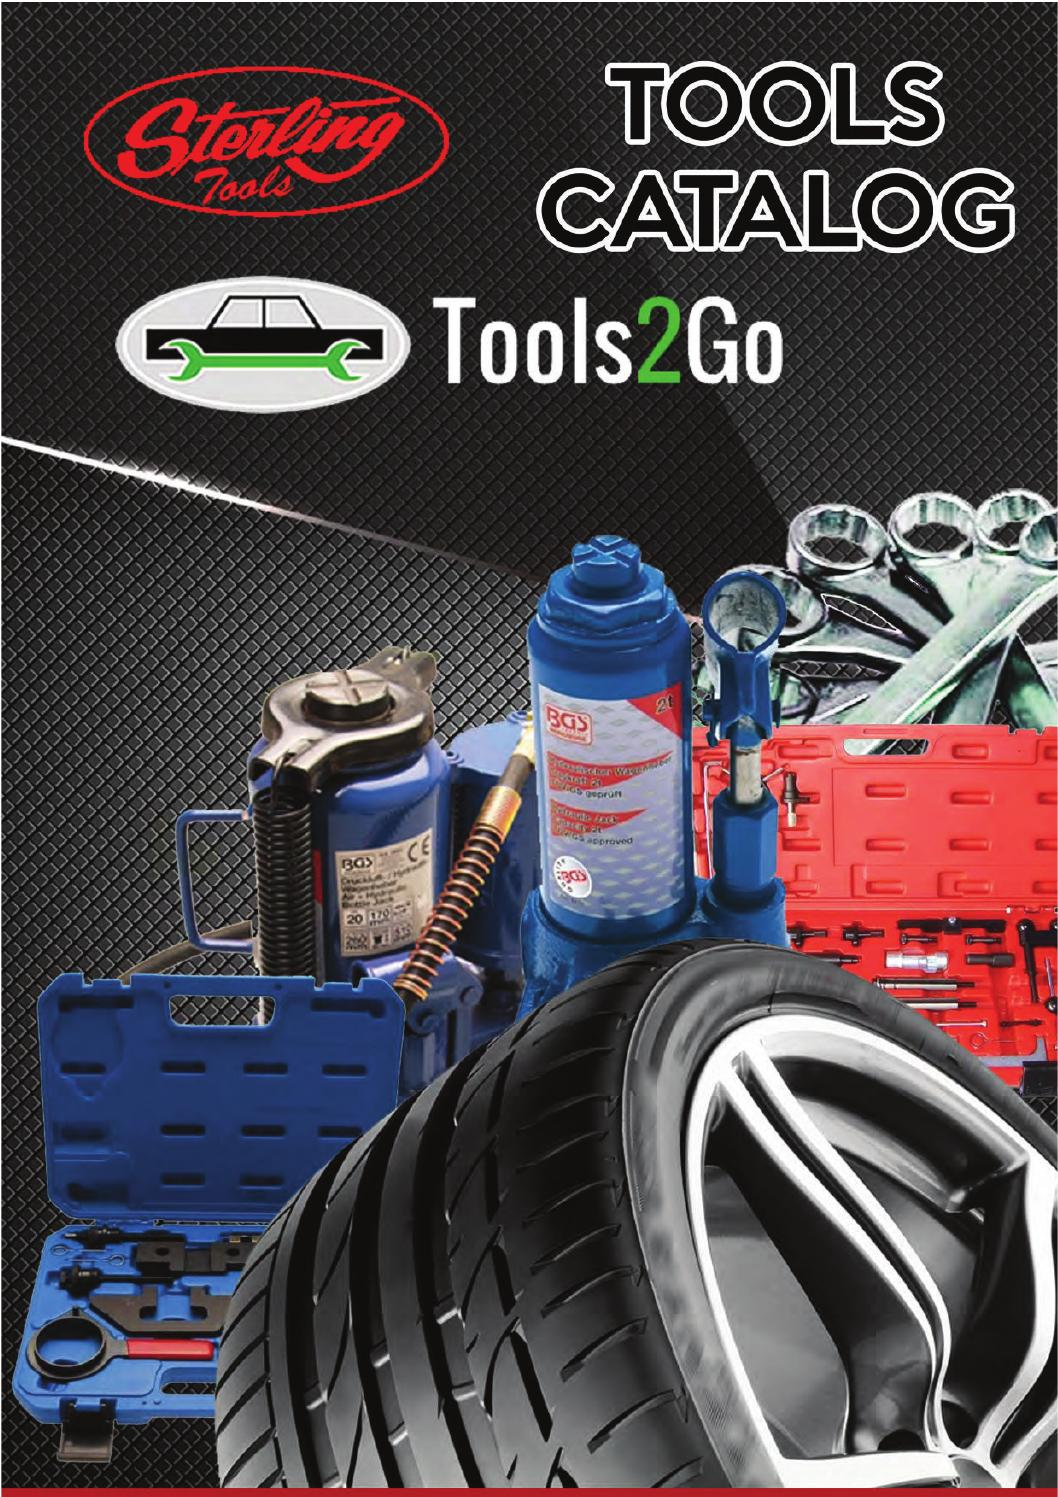 Tools2go Gereedschap Catalogus Deel 2 By Issuu Remote Control Toy Car Transmitter Circuit Automotivecircuit